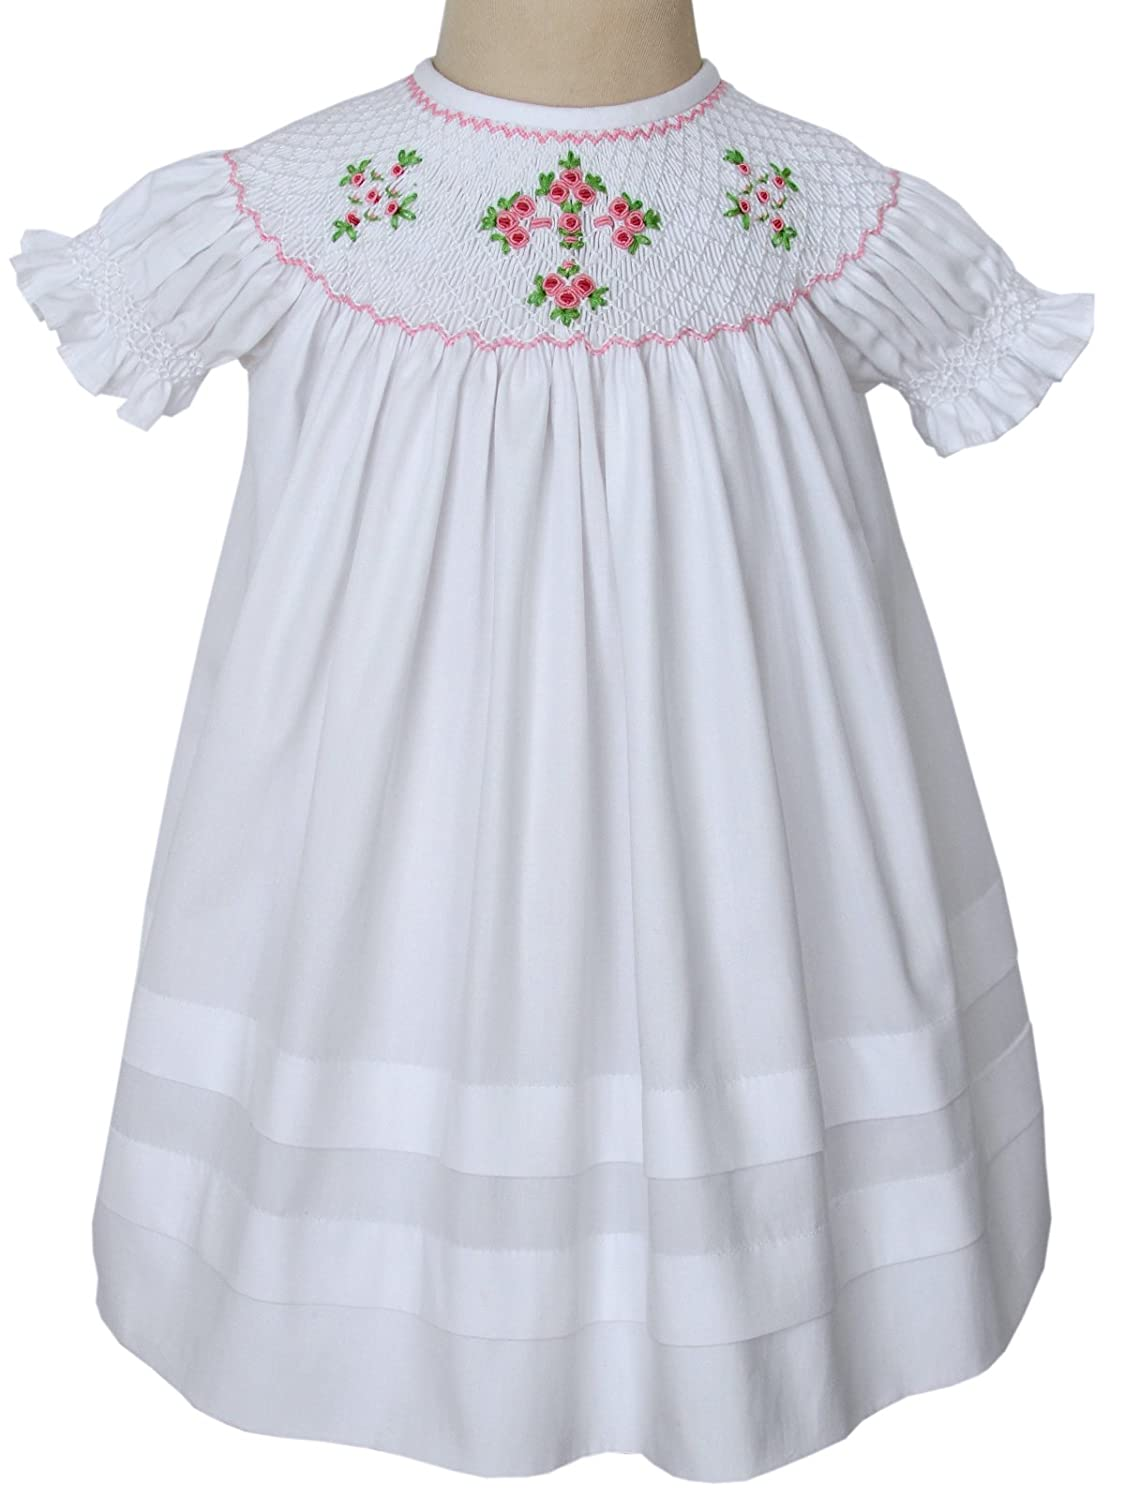 7a45d943d Amazon.com  Carouselwear Girls Easter White Dress Christening Cross ...